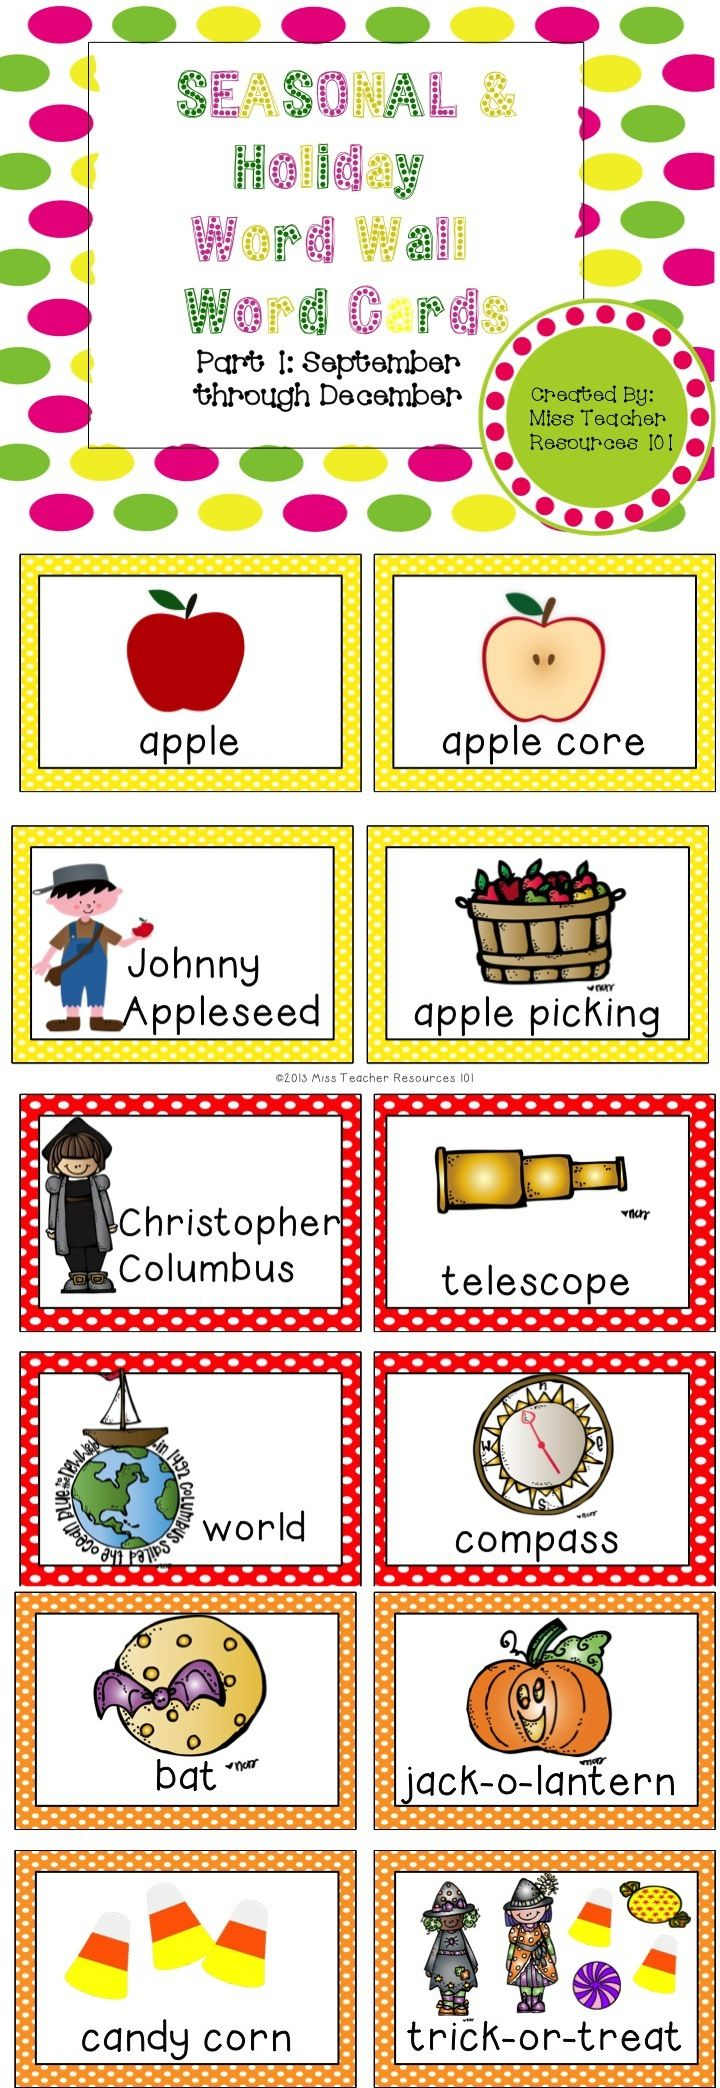 52 best word wall images on Pinterest | Classroom ideas, Classroom ...